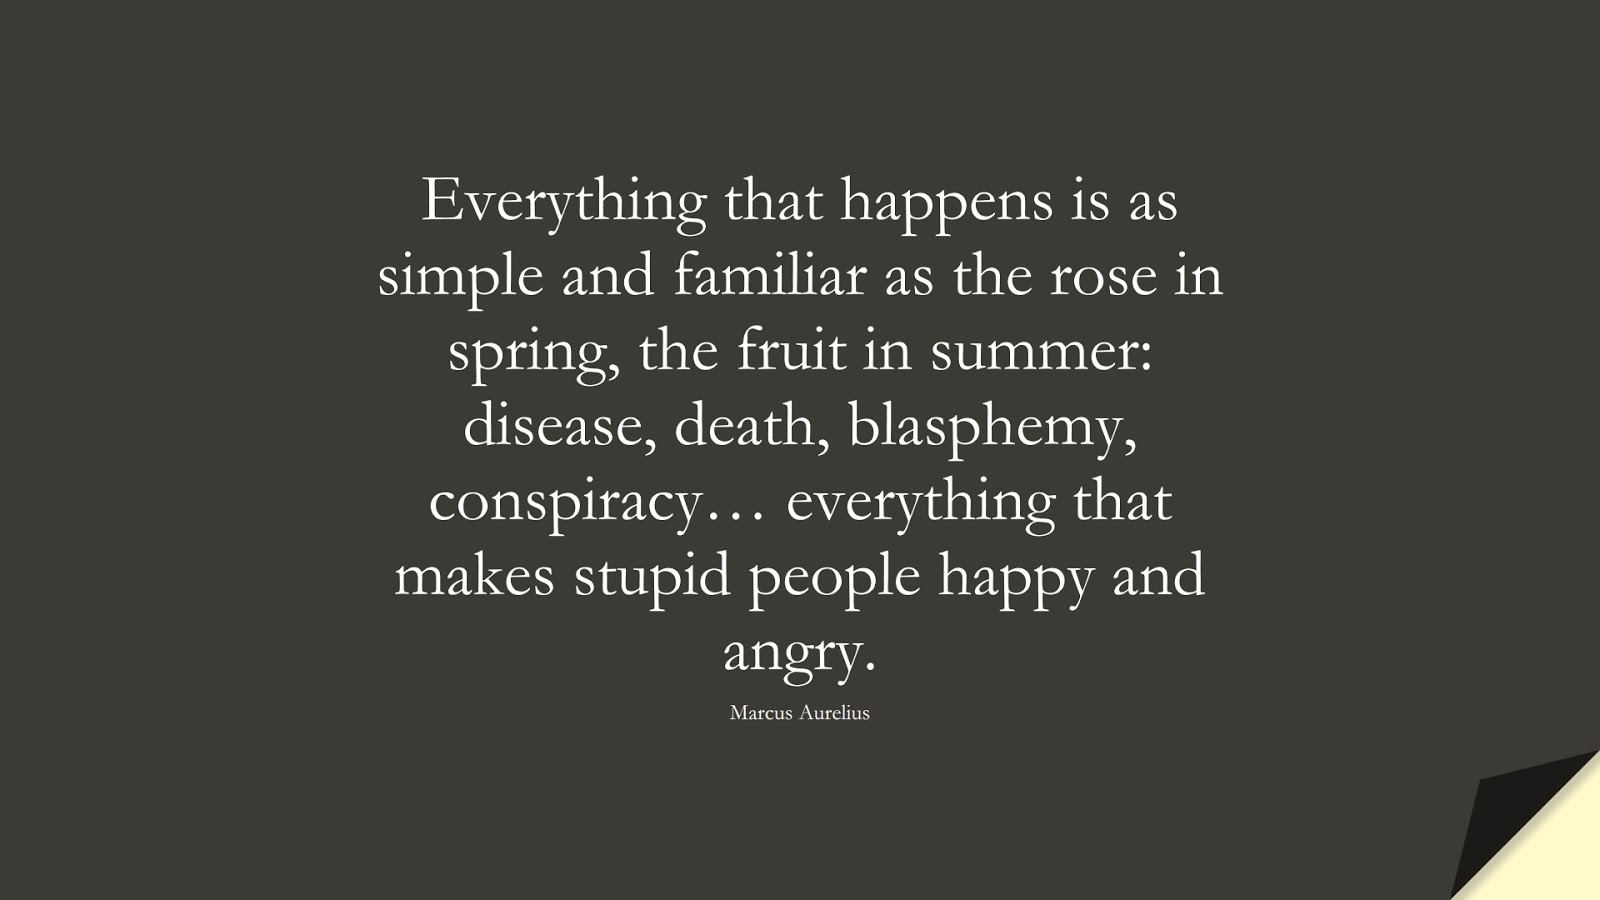 Everything that happens is as simple and familiar as the rose in spring, the fruit in summer: disease, death, blasphemy, conspiracy… everything that makes stupid people happy and angry. (Marcus Aurelius);  #CalmQuotes